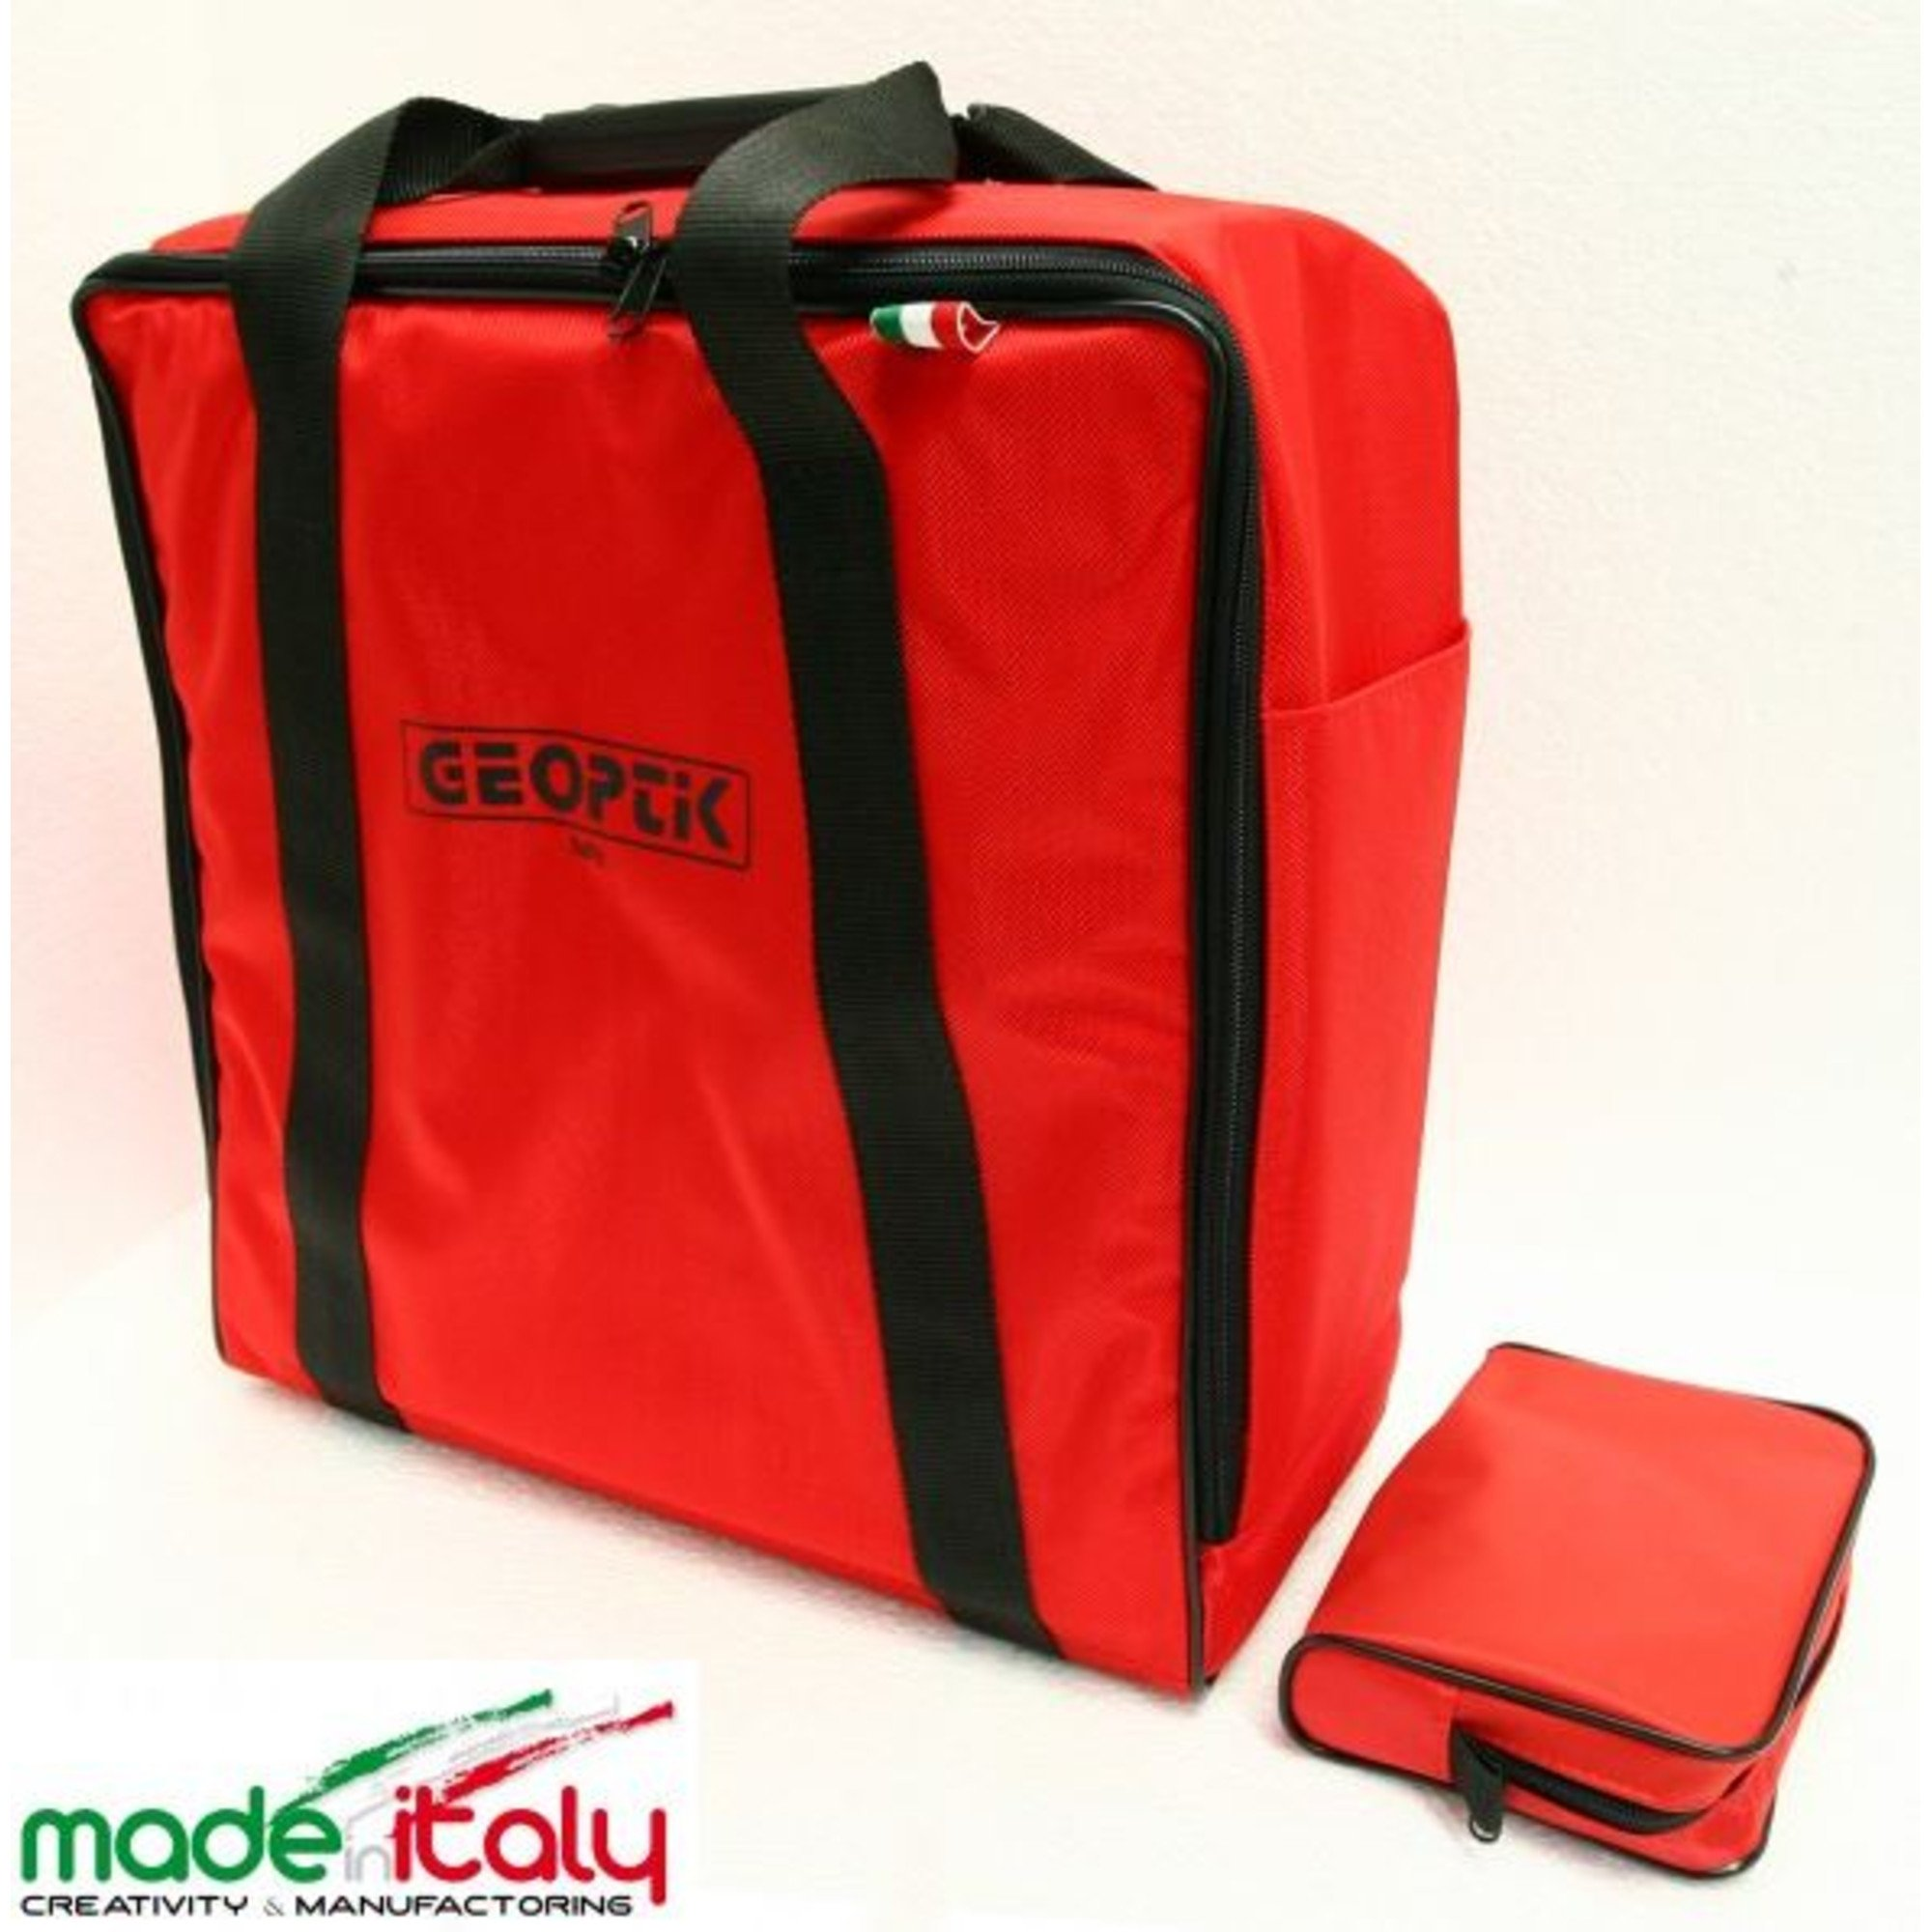 Telescope 30 A045 Padded Bag for Telescope, Red by Geoptik